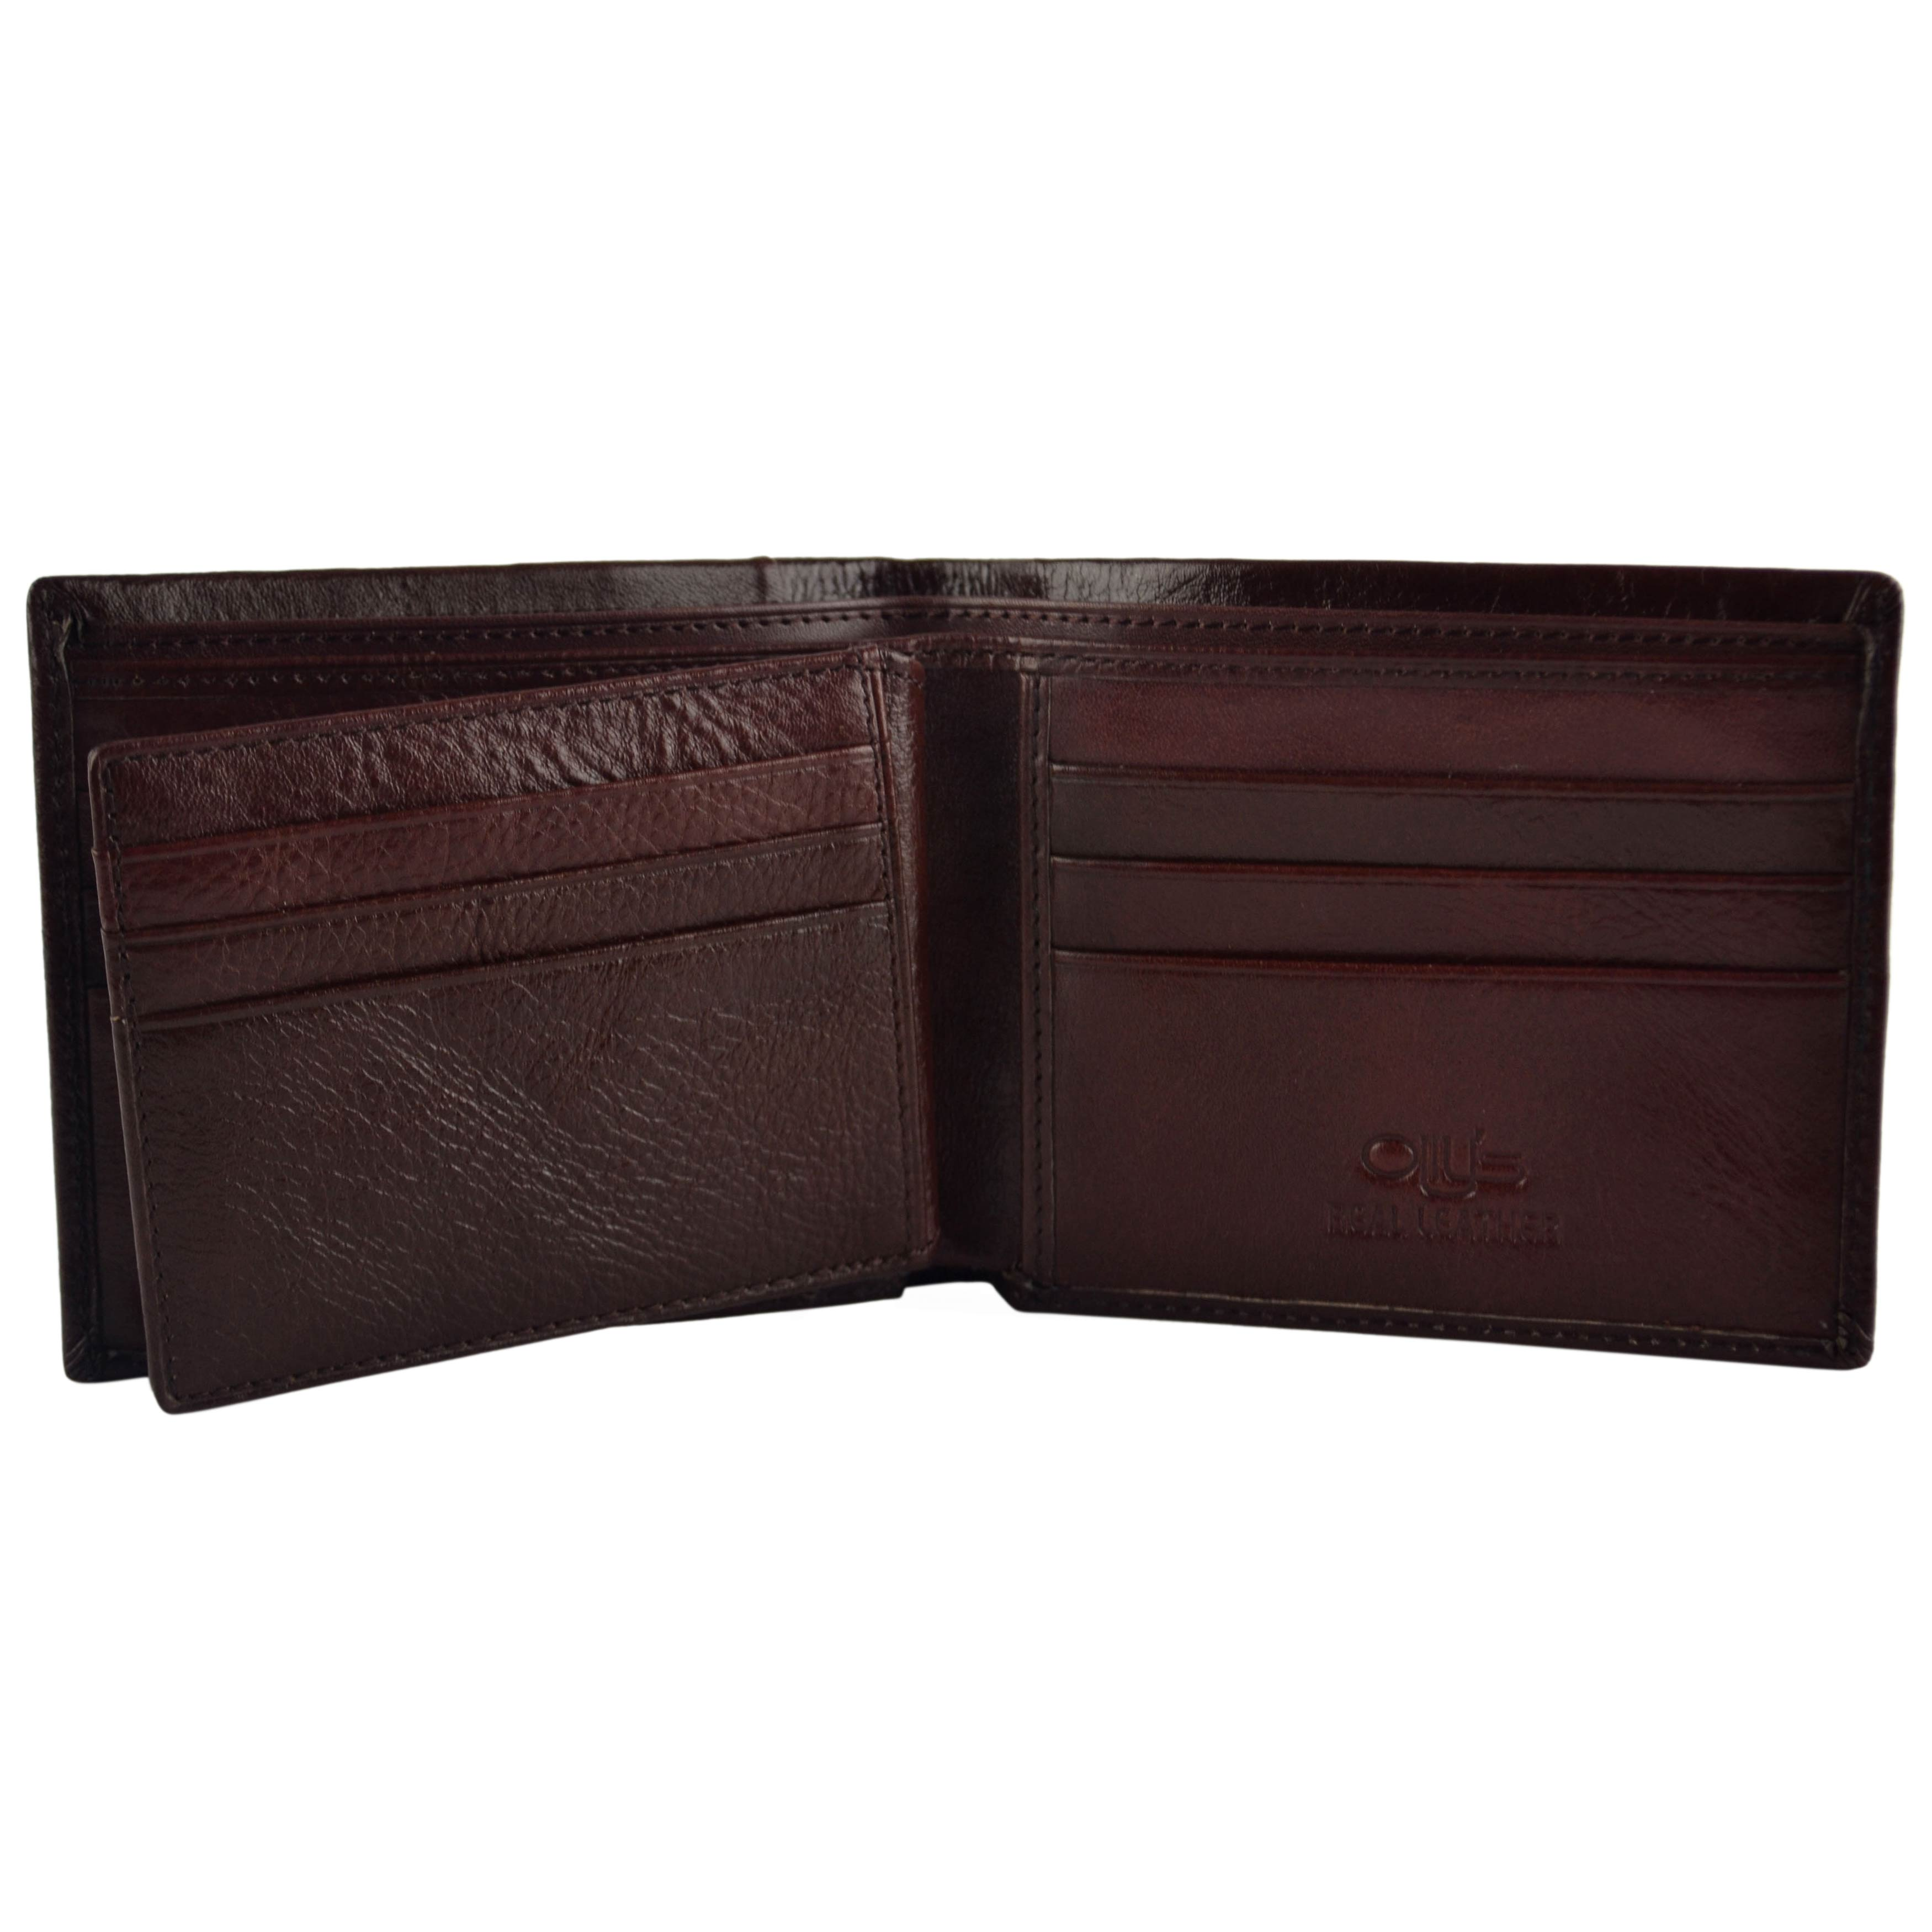 thumbnail 13 - Mens-Fine-Grain-Classic-Leather-Wallet-by-Olly-039-s-Wilson-Collection-Gift-Box